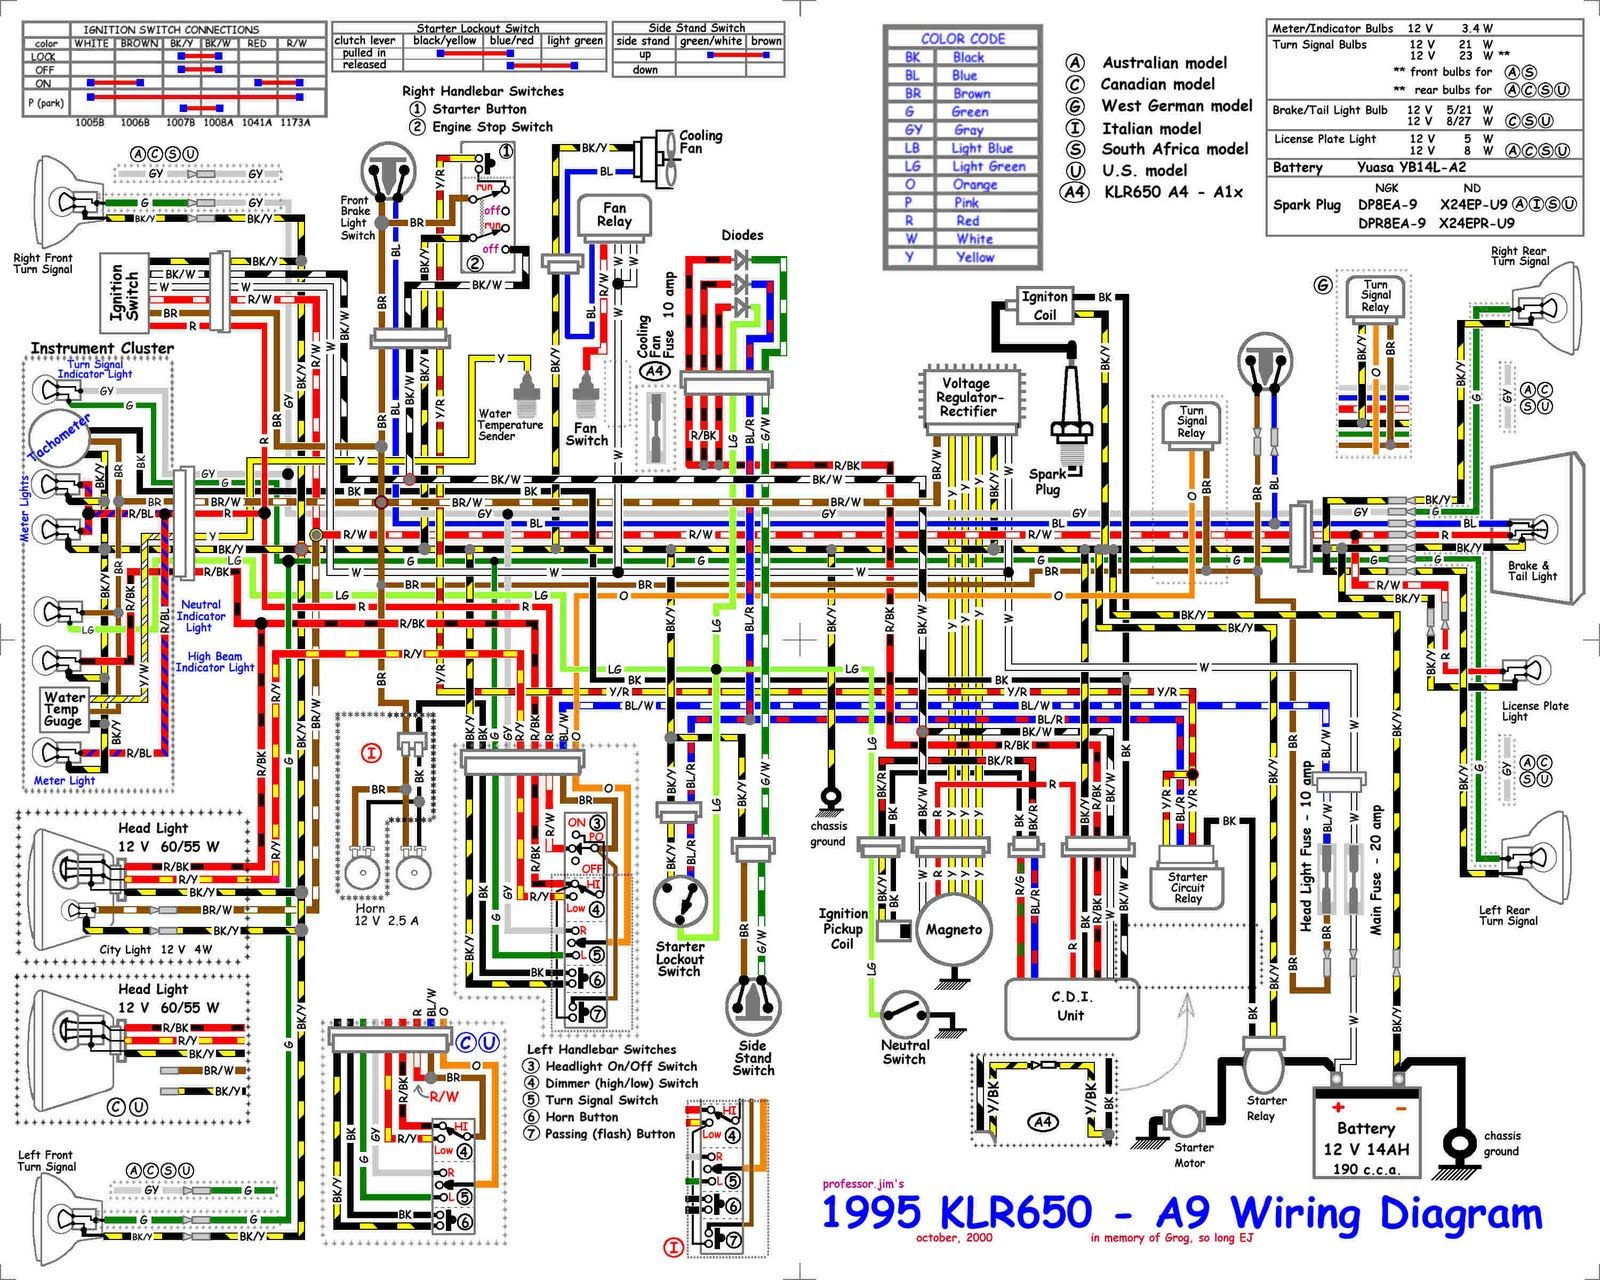 pin by larry hurt on cool cars pinterest diagram, wire and Escalade Wiring Diagram 1974 monte carlo wiring diagram jpg 1,600�1,280 pixels electrical